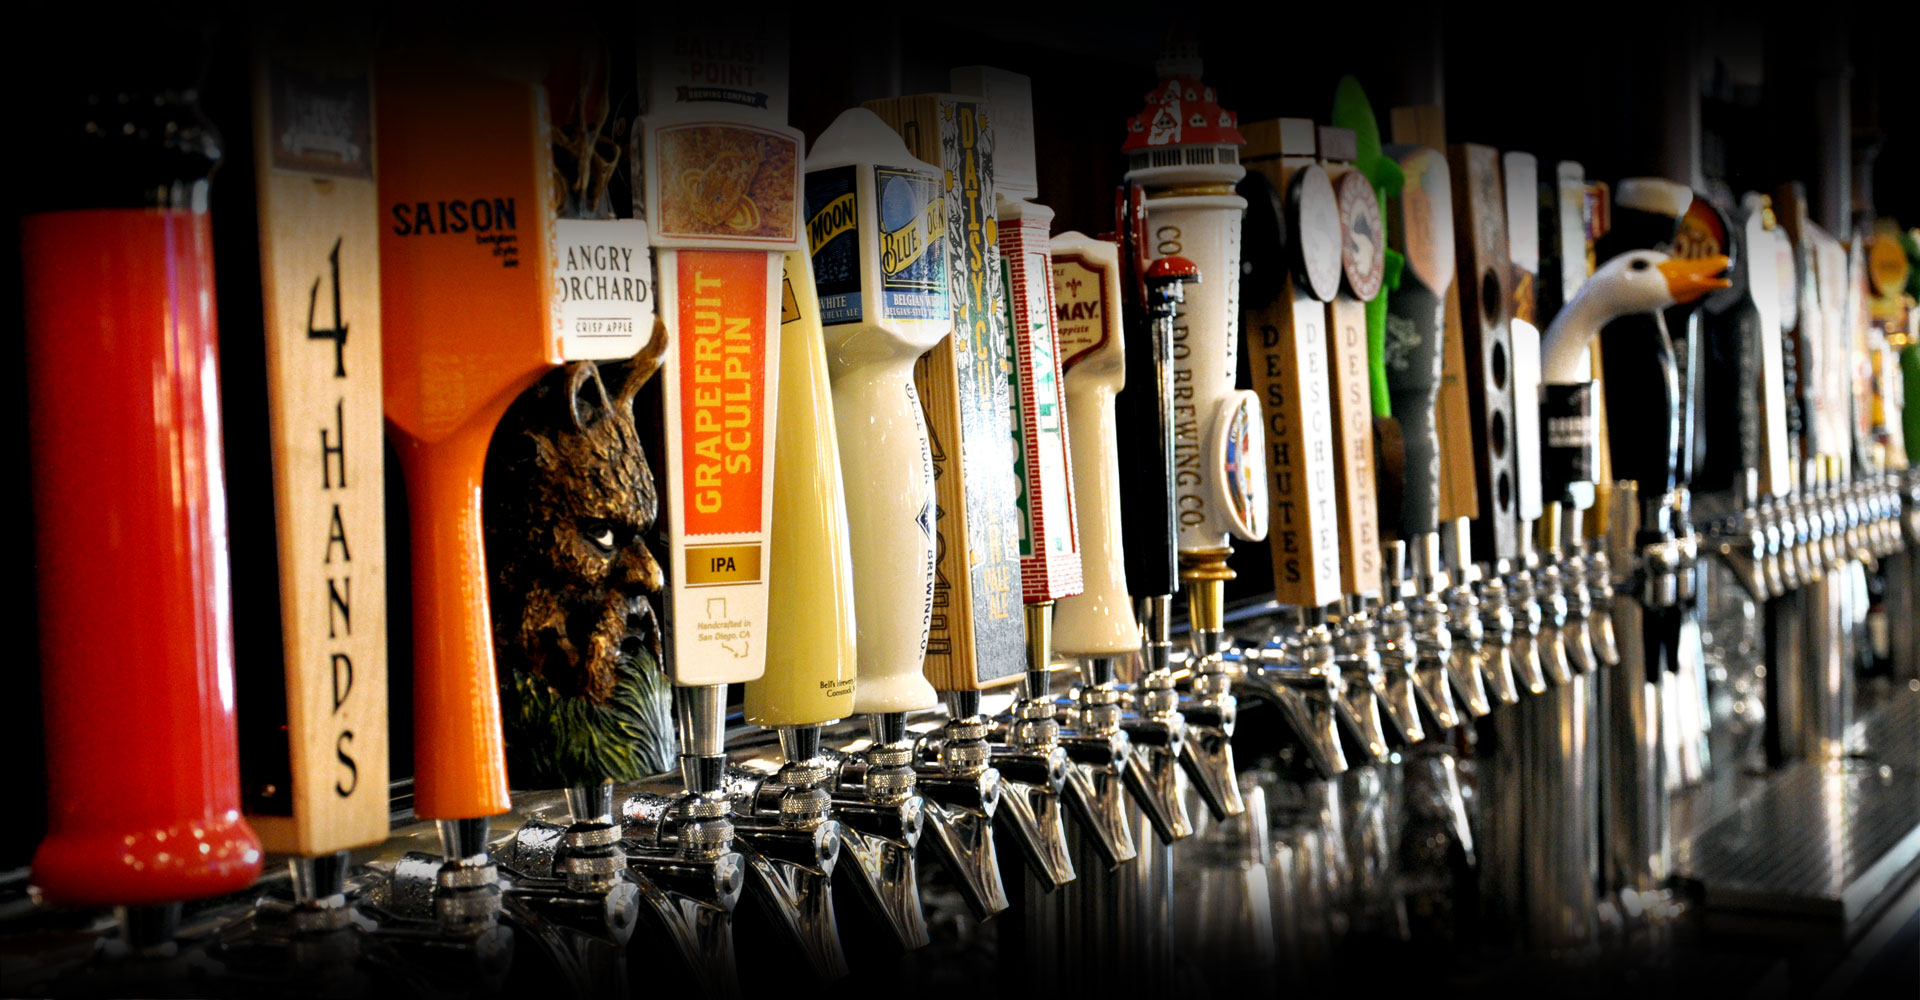 We've got Gurnee's best craft beer line up.